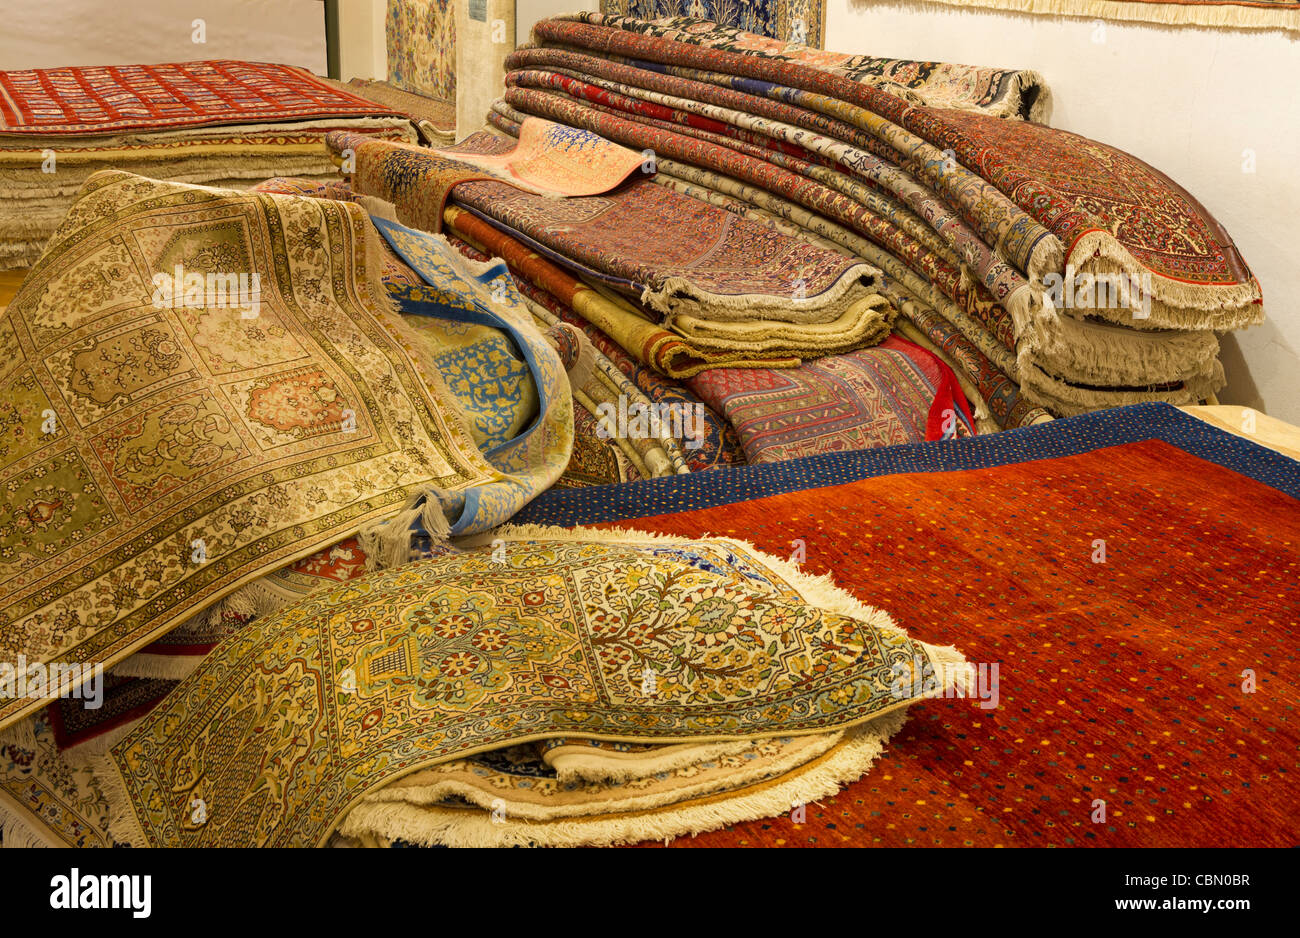 Real oriental carpets lie on a heap sell selling shop sale sellout expensive orient wool silk valuable value color - Stock Image